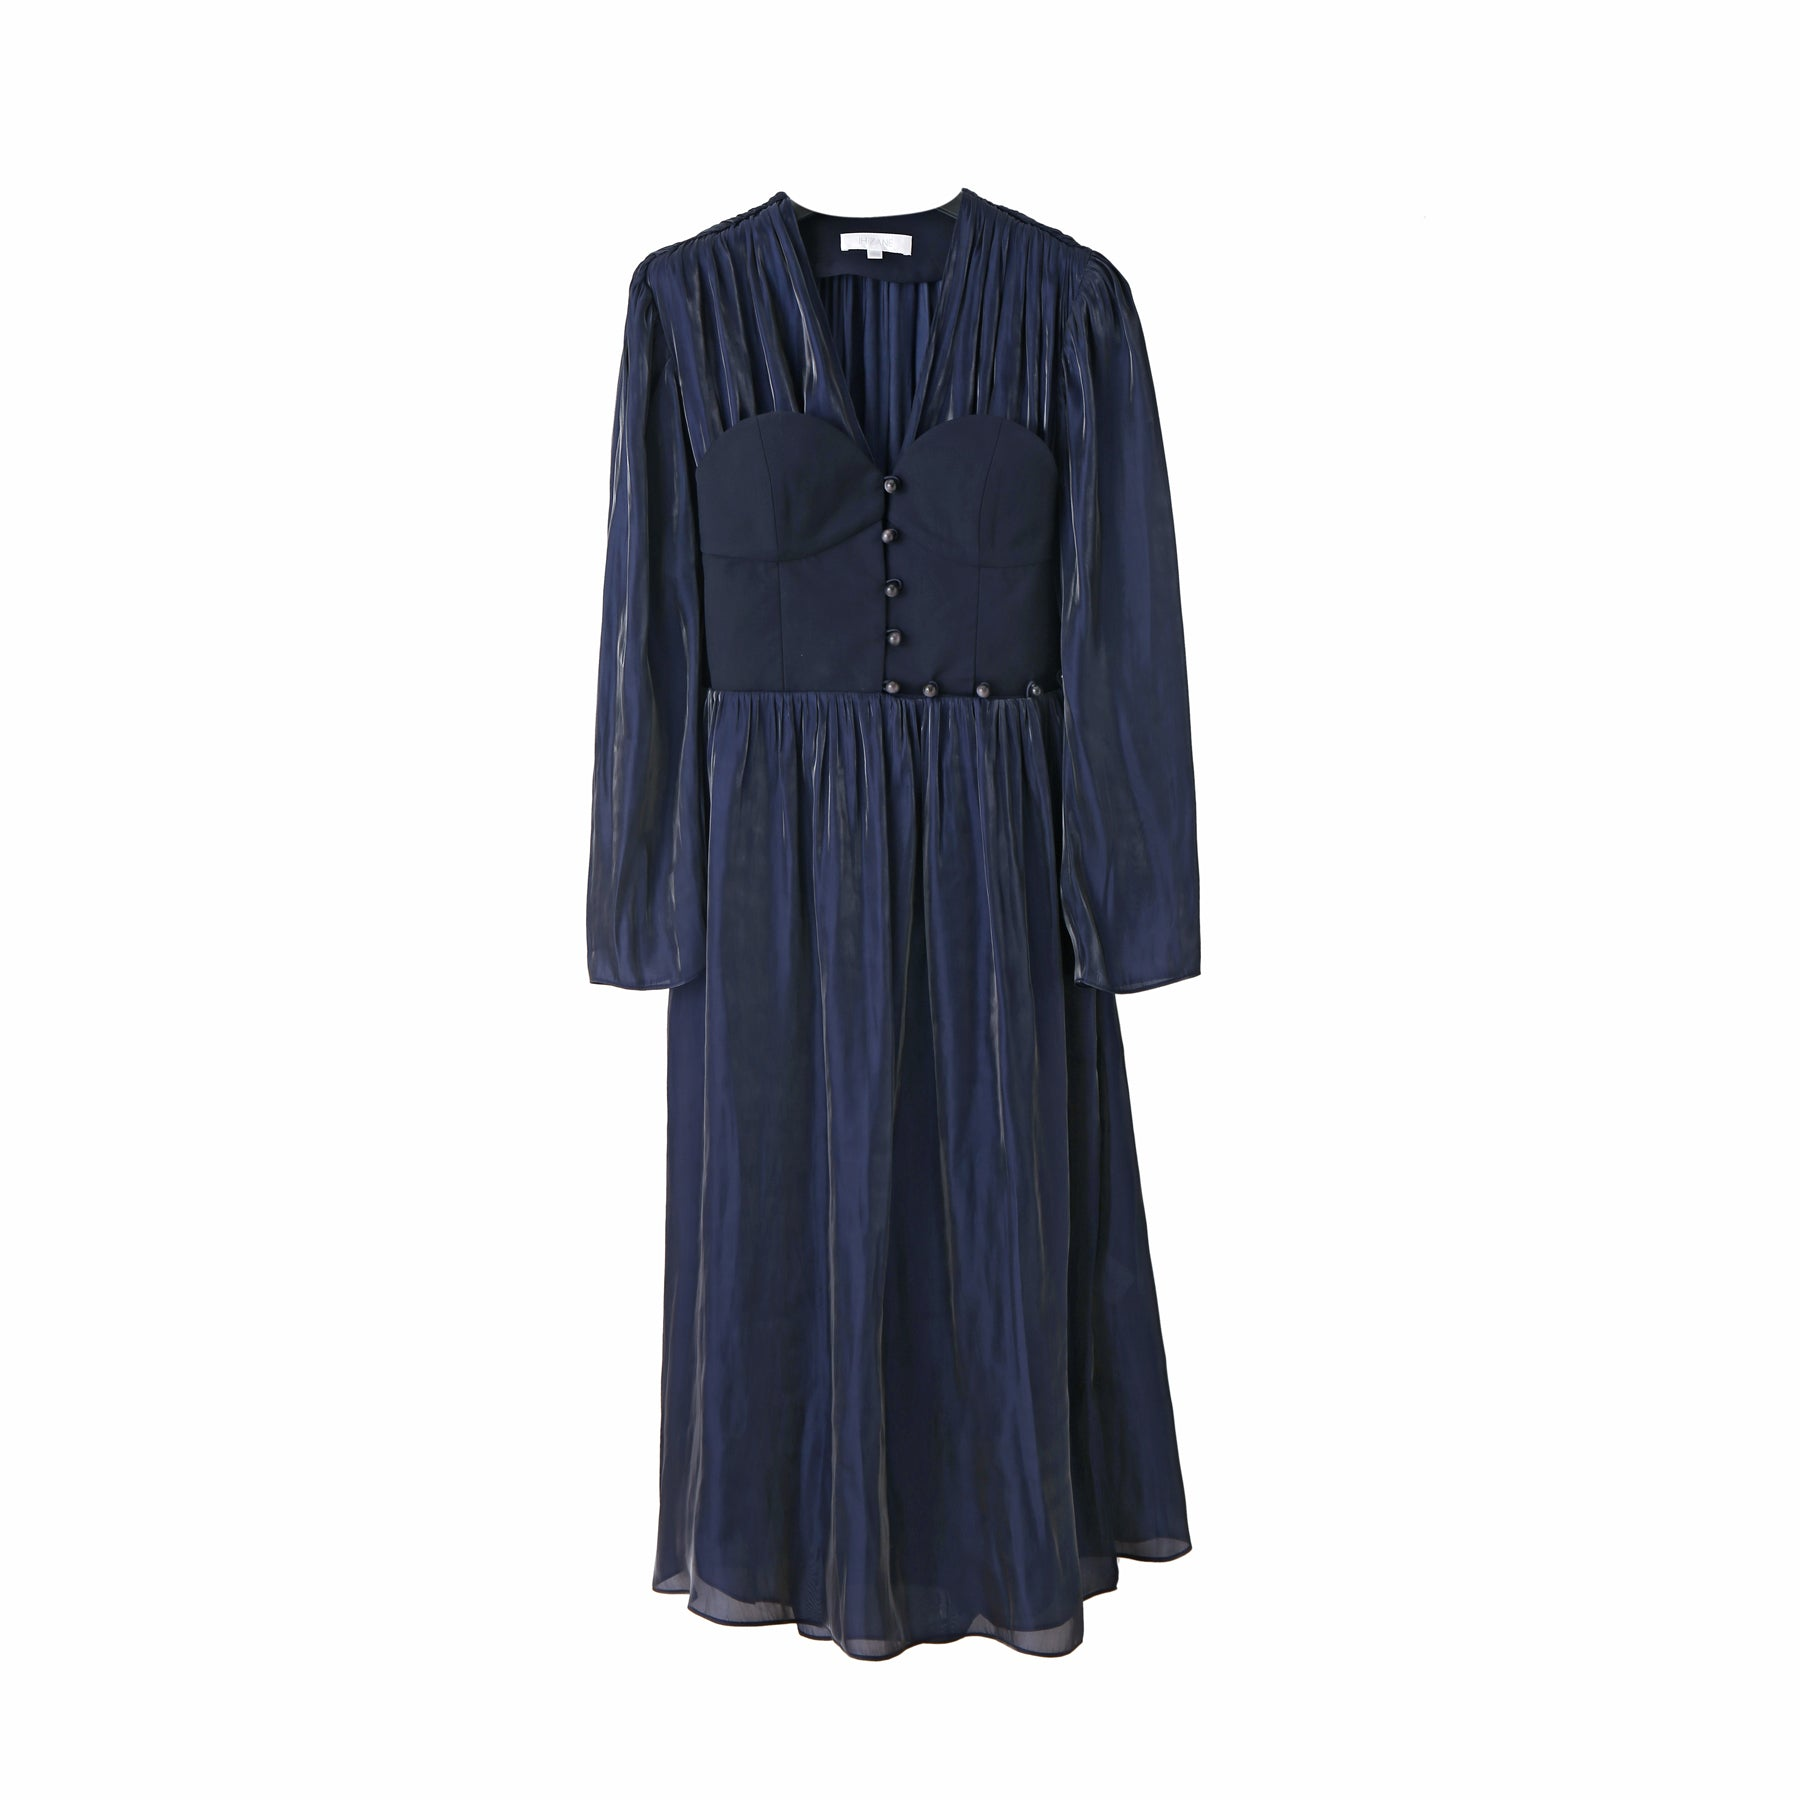 Winifred Corset Dress in Navy